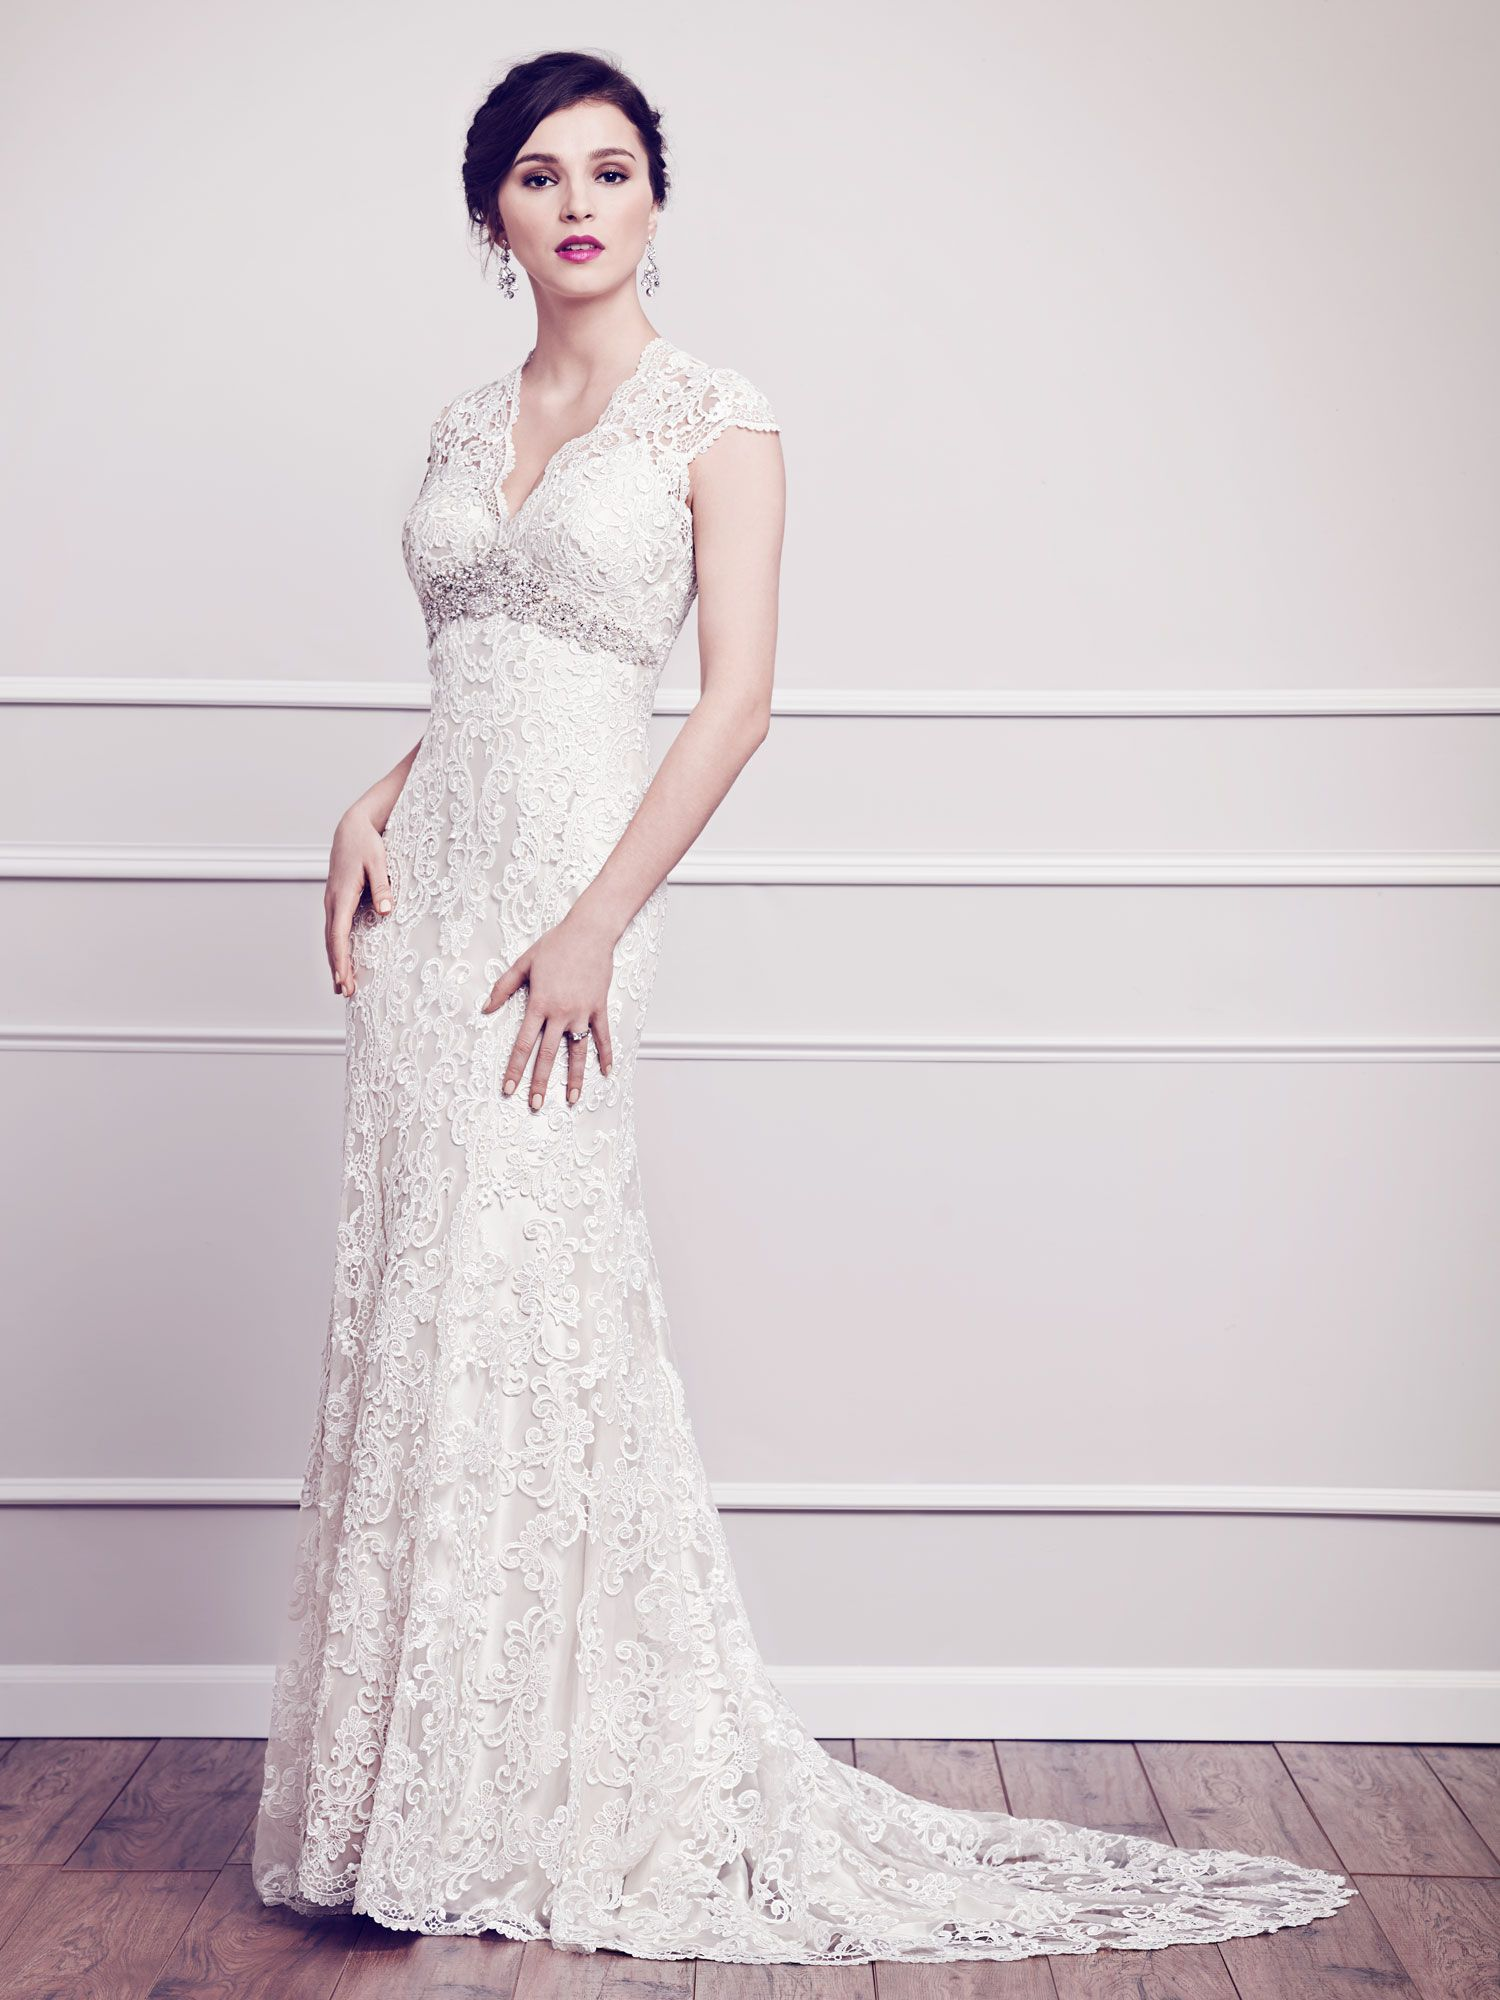 Classic vneckline gown wrapped with floral arrangements made of